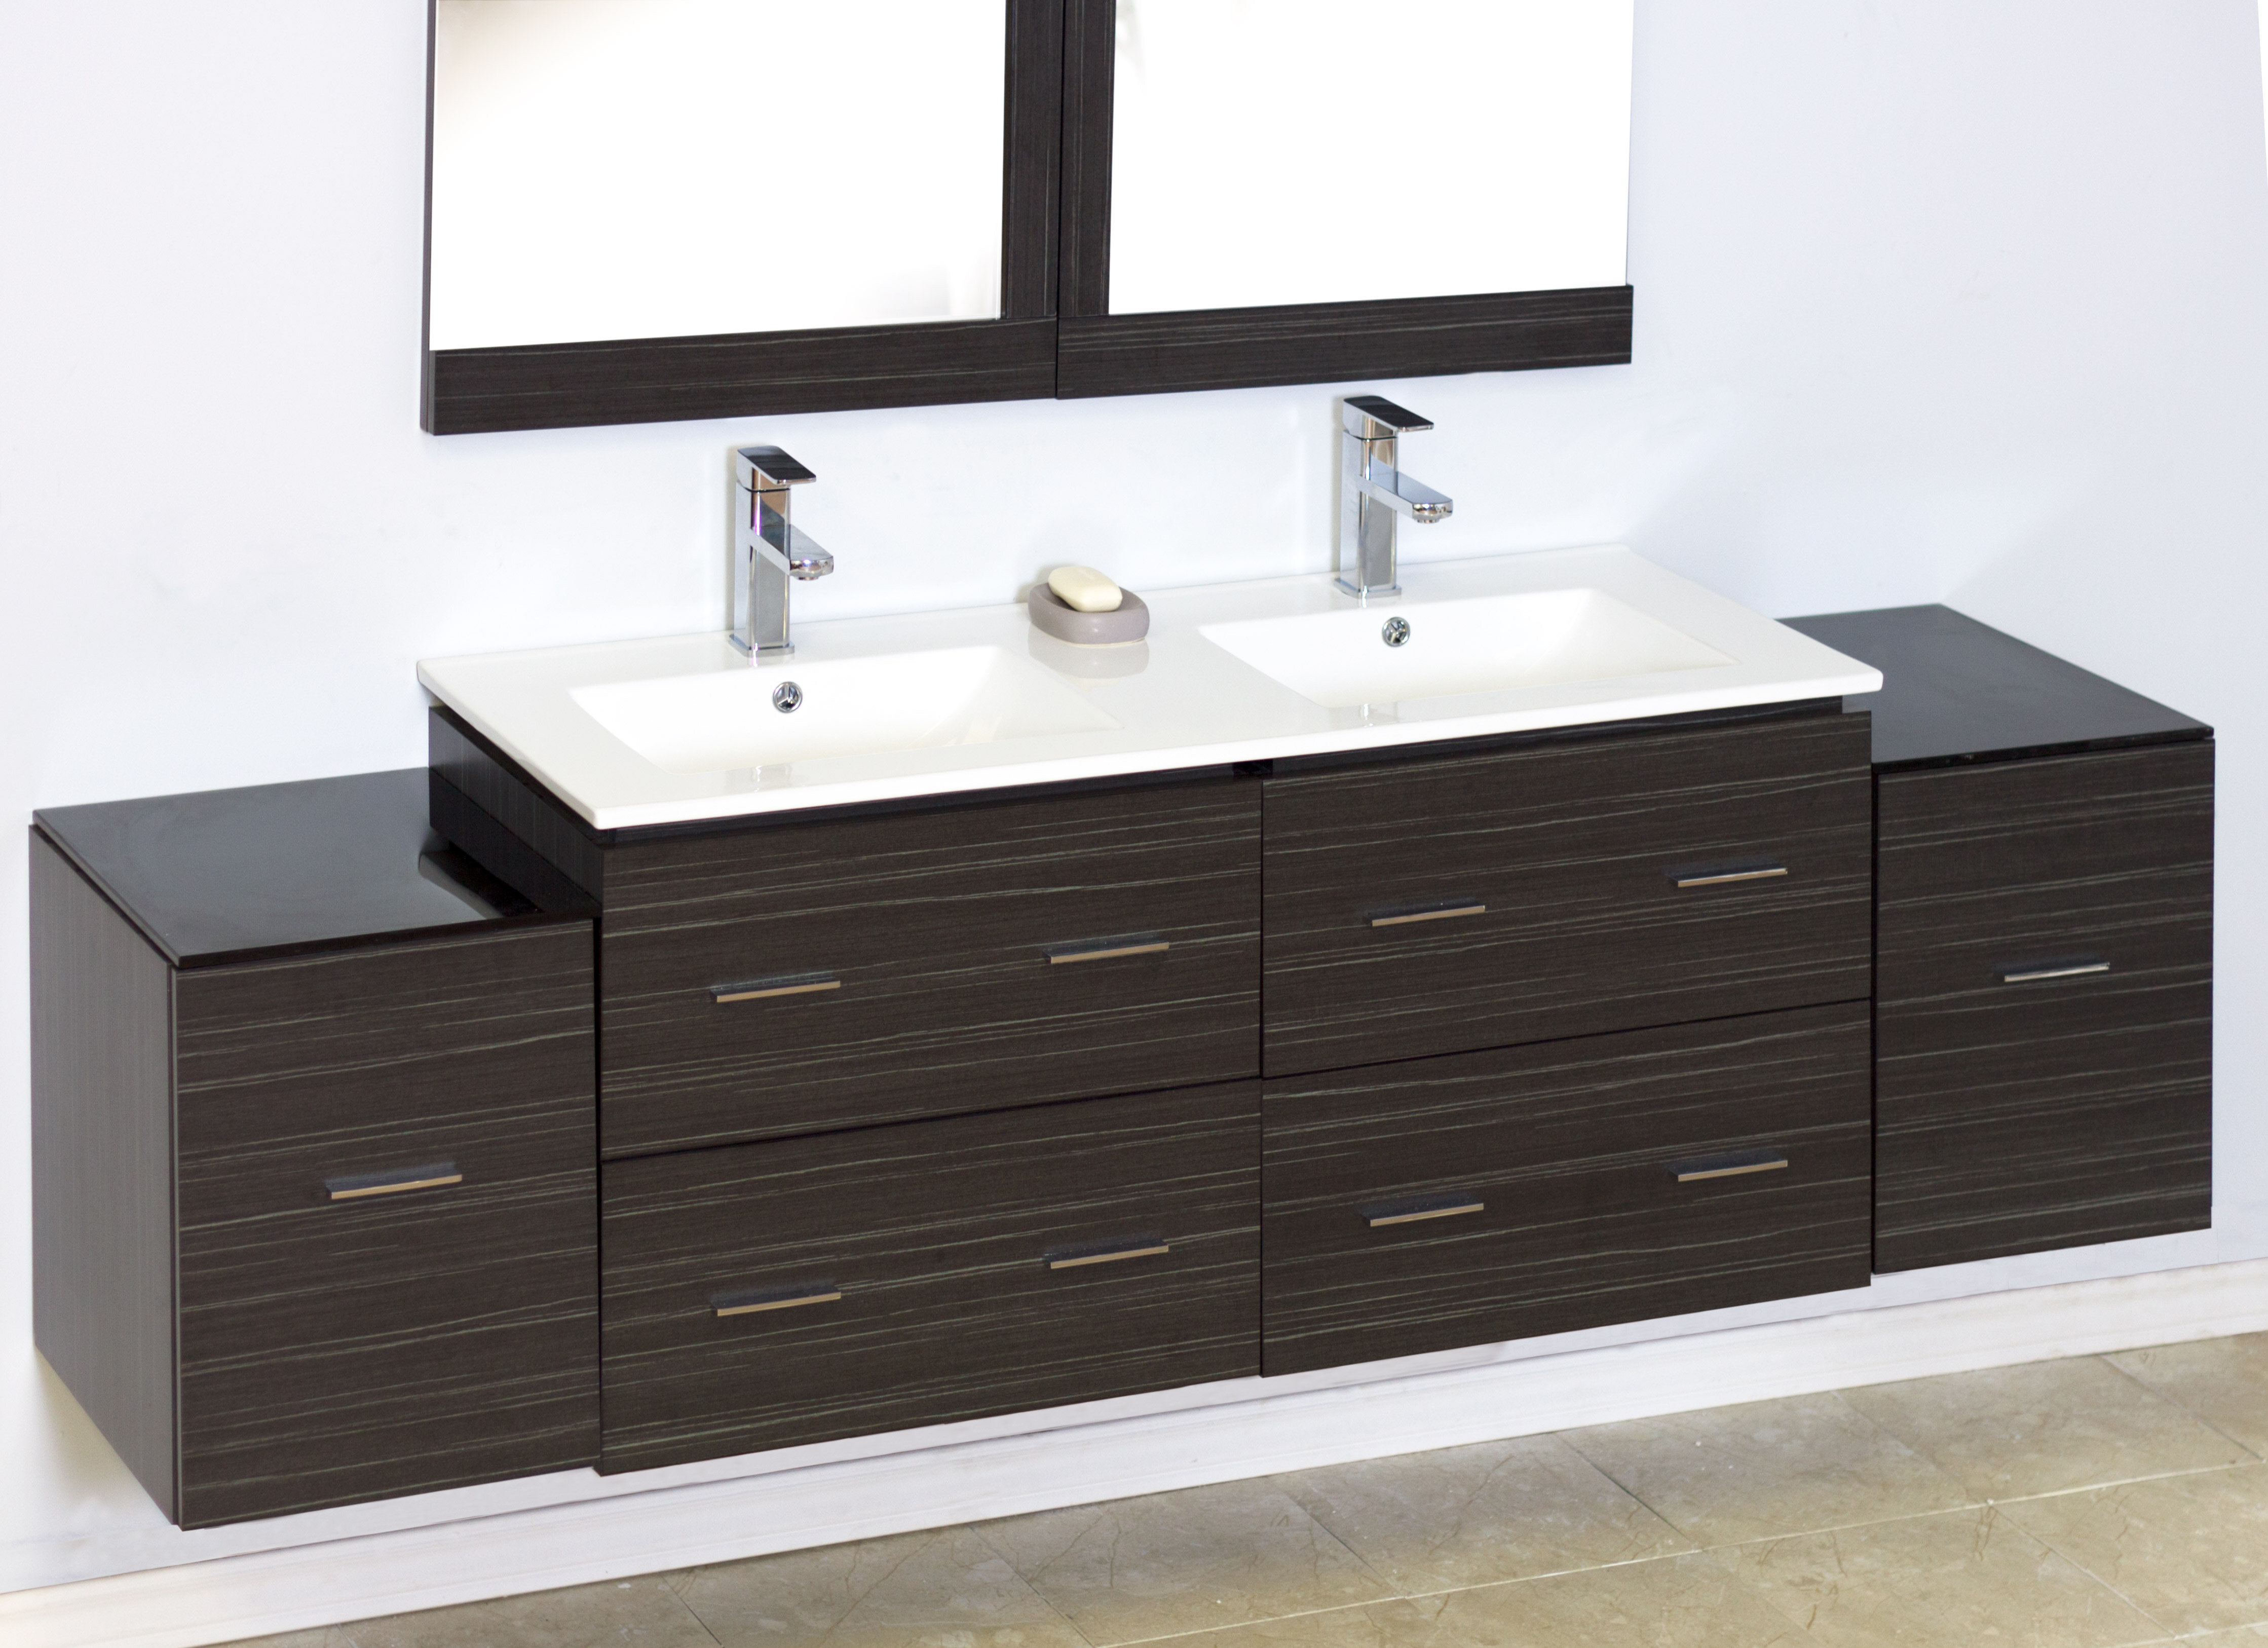 bathrooms pin cabinet from vanity top bathroom timber buy without wall eden highgrove mount